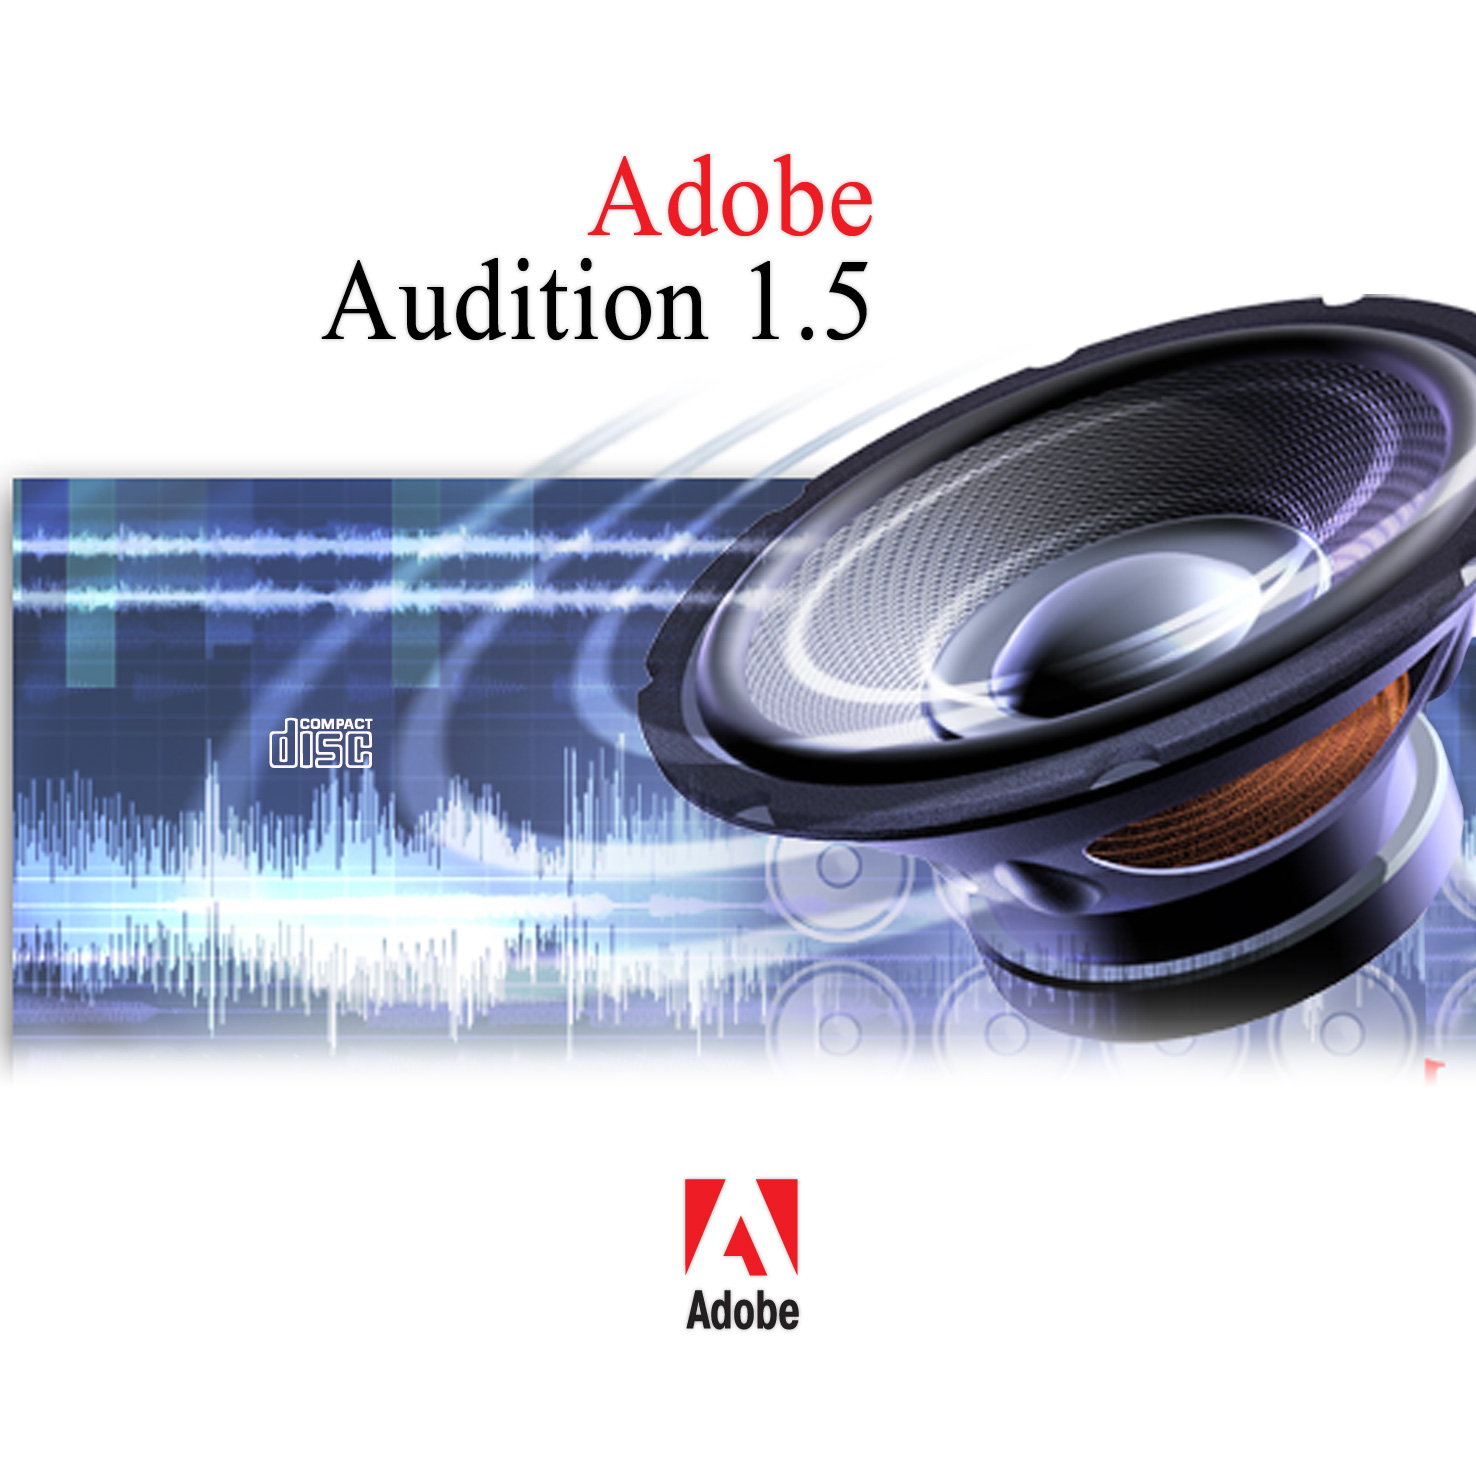 Adobe Audition 1.5 Crack.Rar